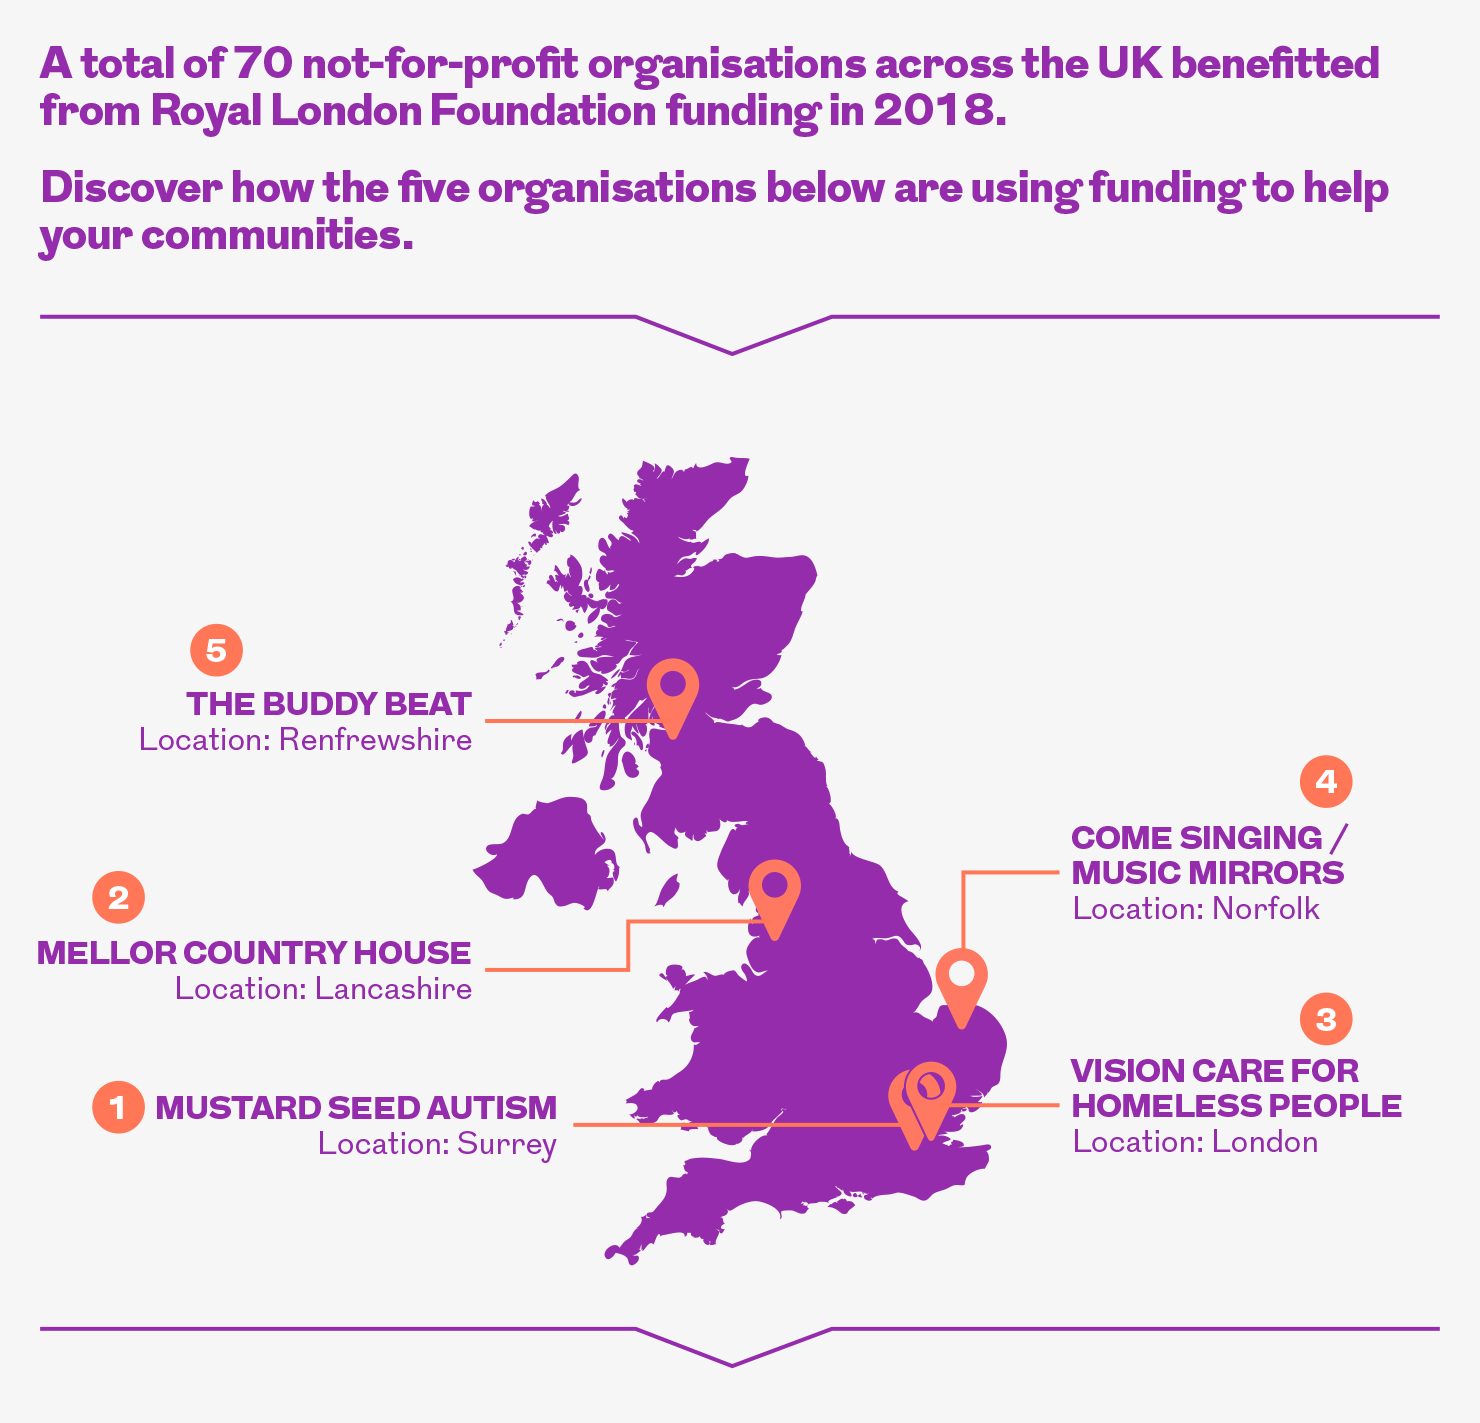 Map of UK which highlights the locations of five not-for-profit organisations the Royal London foundation supported in 2019